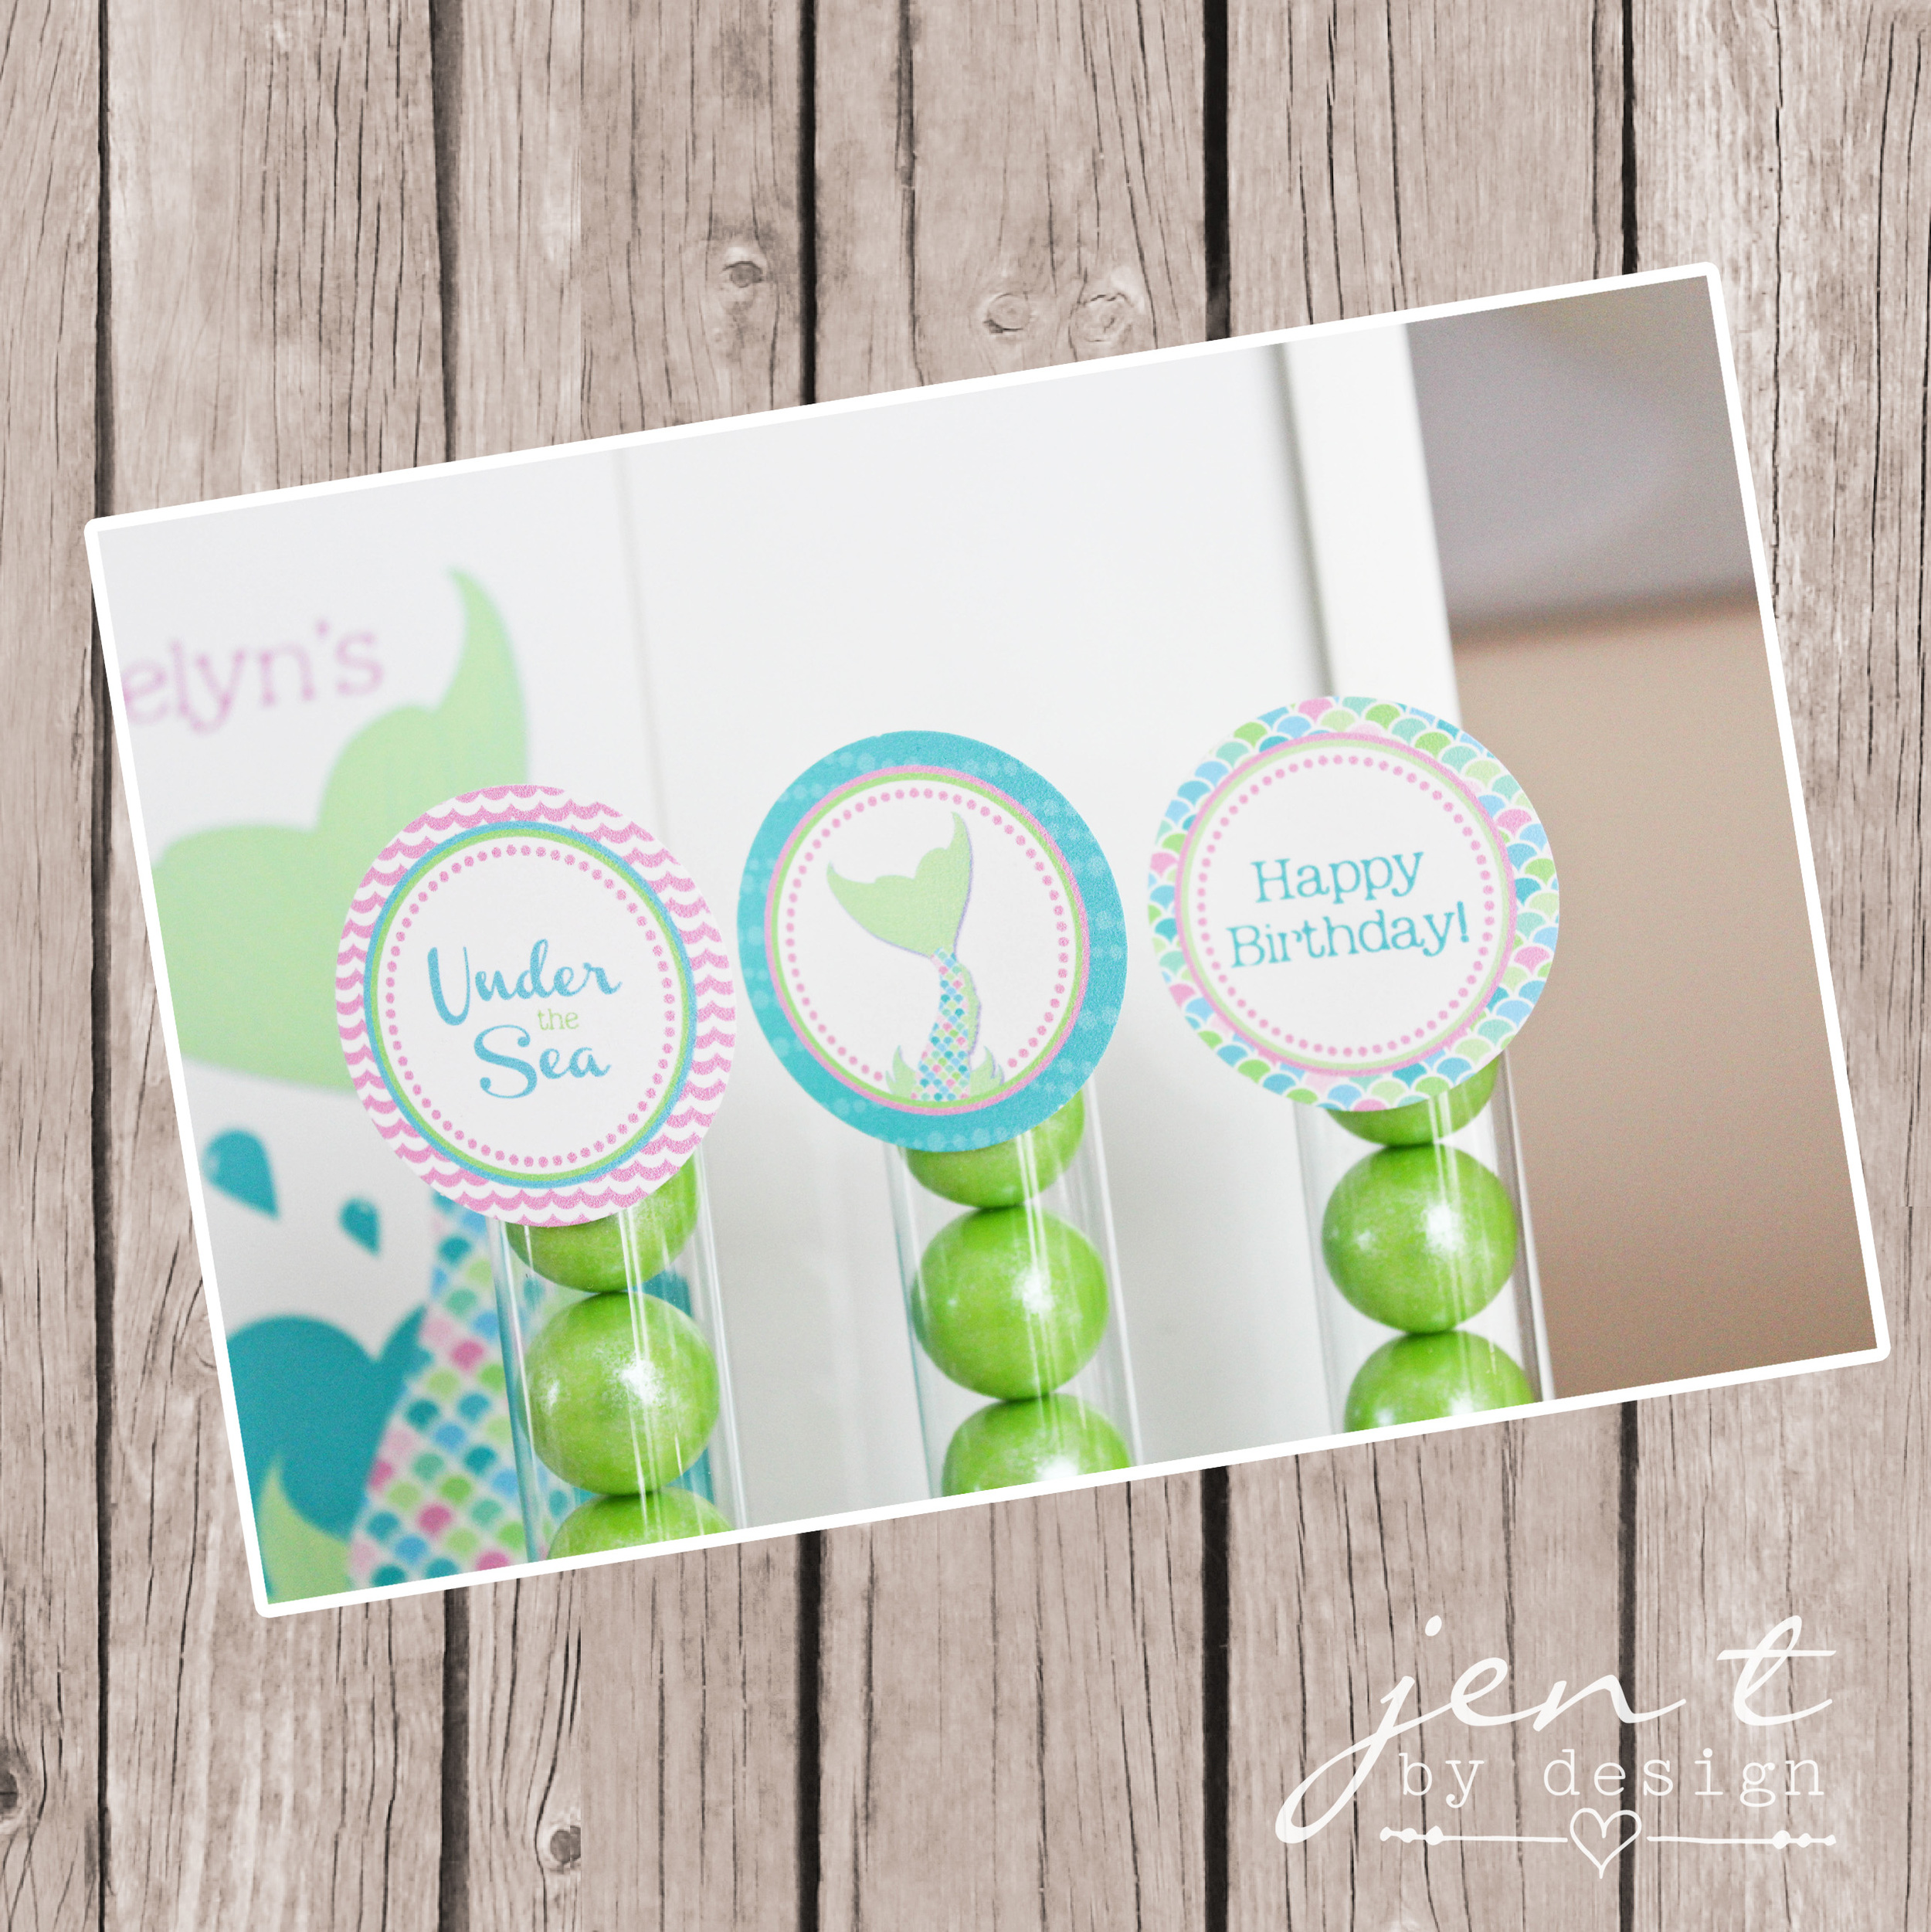 Mermaid Party Toppers - mounted and watermarked copy.jpg